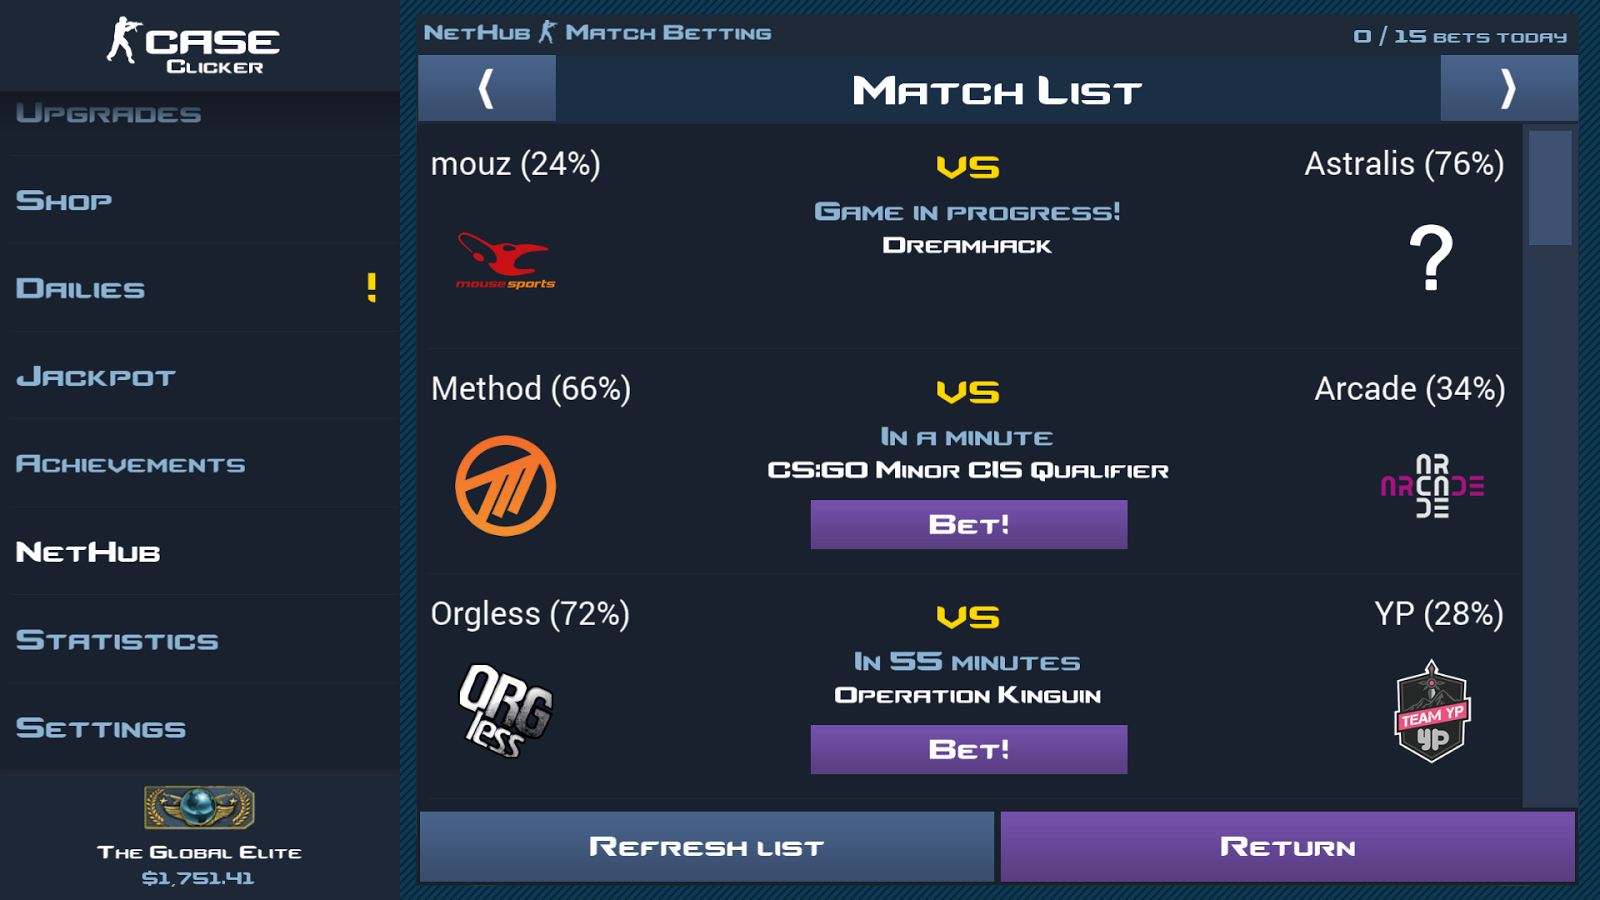 Case Clicker Screenshot 3